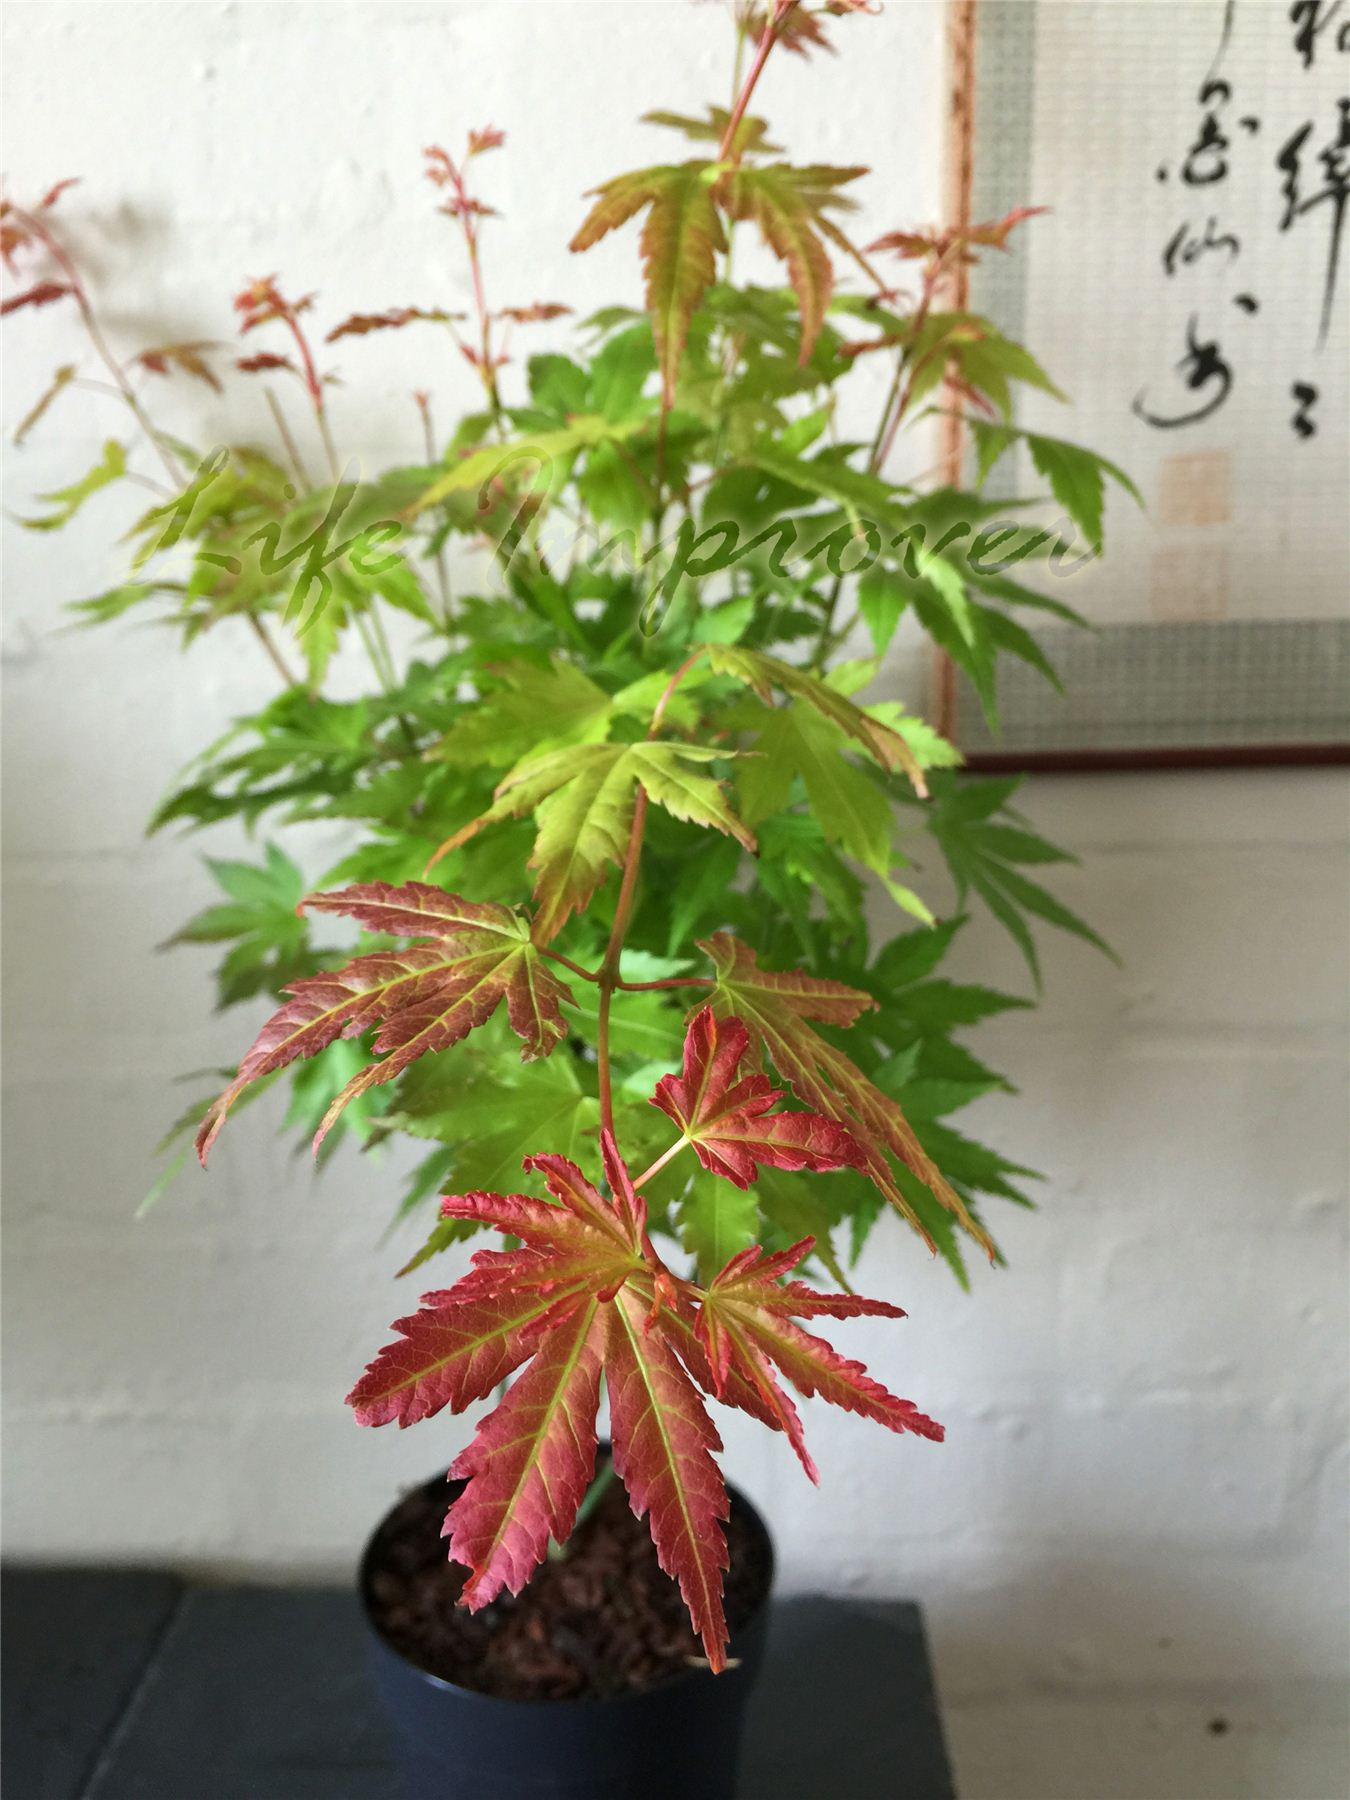 Japanese maple momiji acer palmatum house plant pot for Japanese outdoor plants